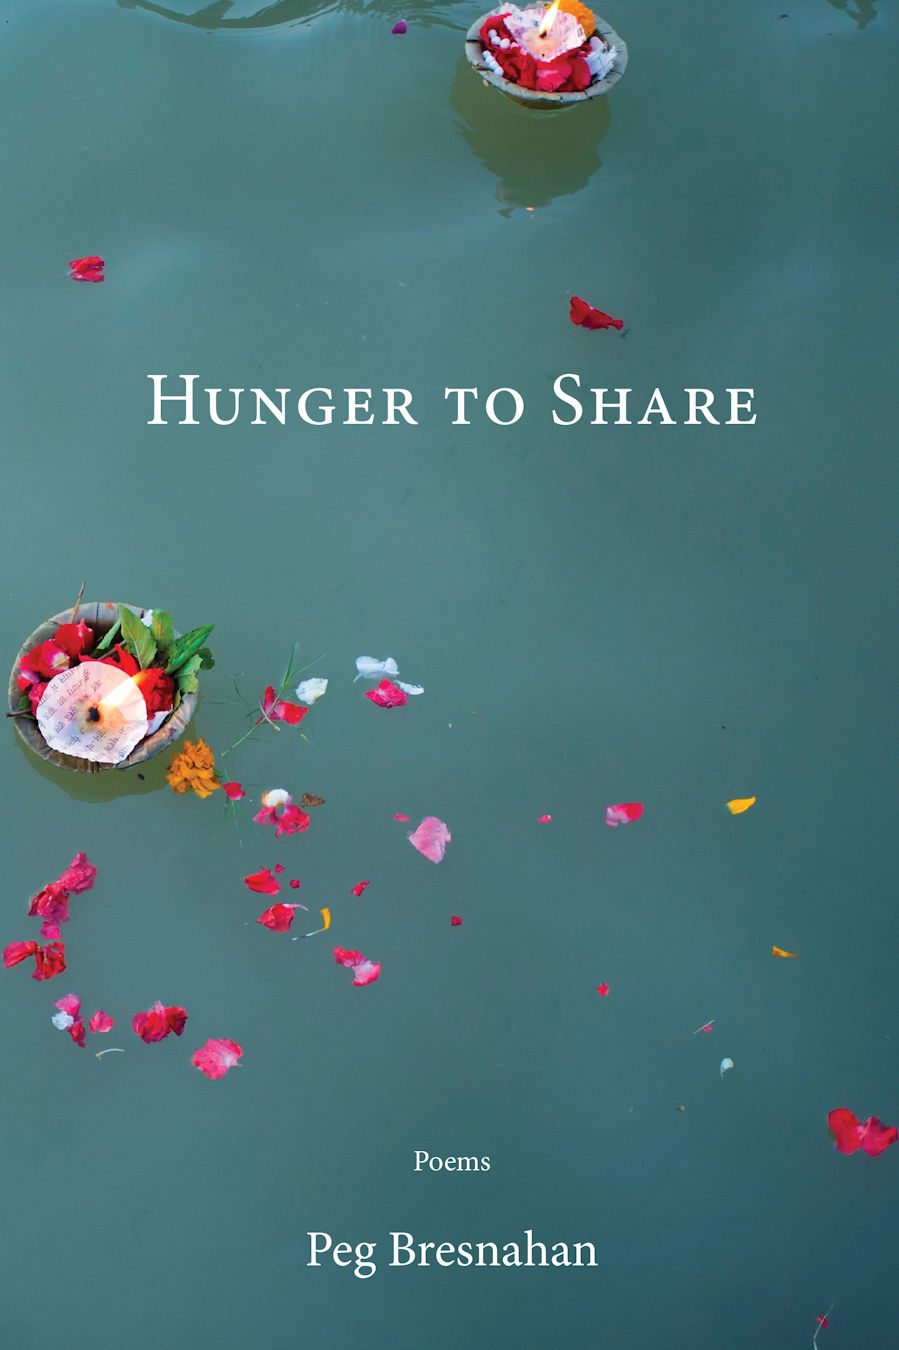 Hunger to Share by Peg Breanahan sm.jpg